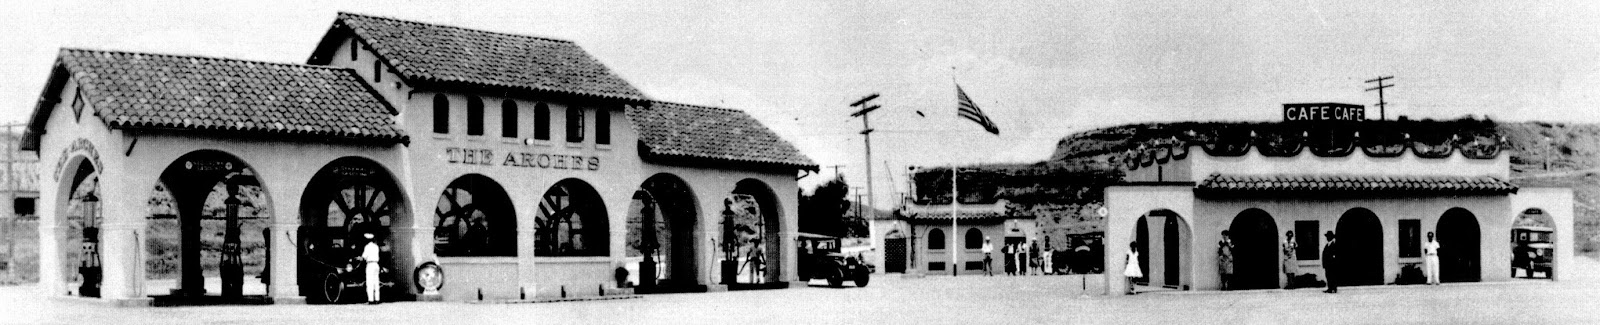 An Early Image Of The Arches Service Station Left And Market Cafe Right